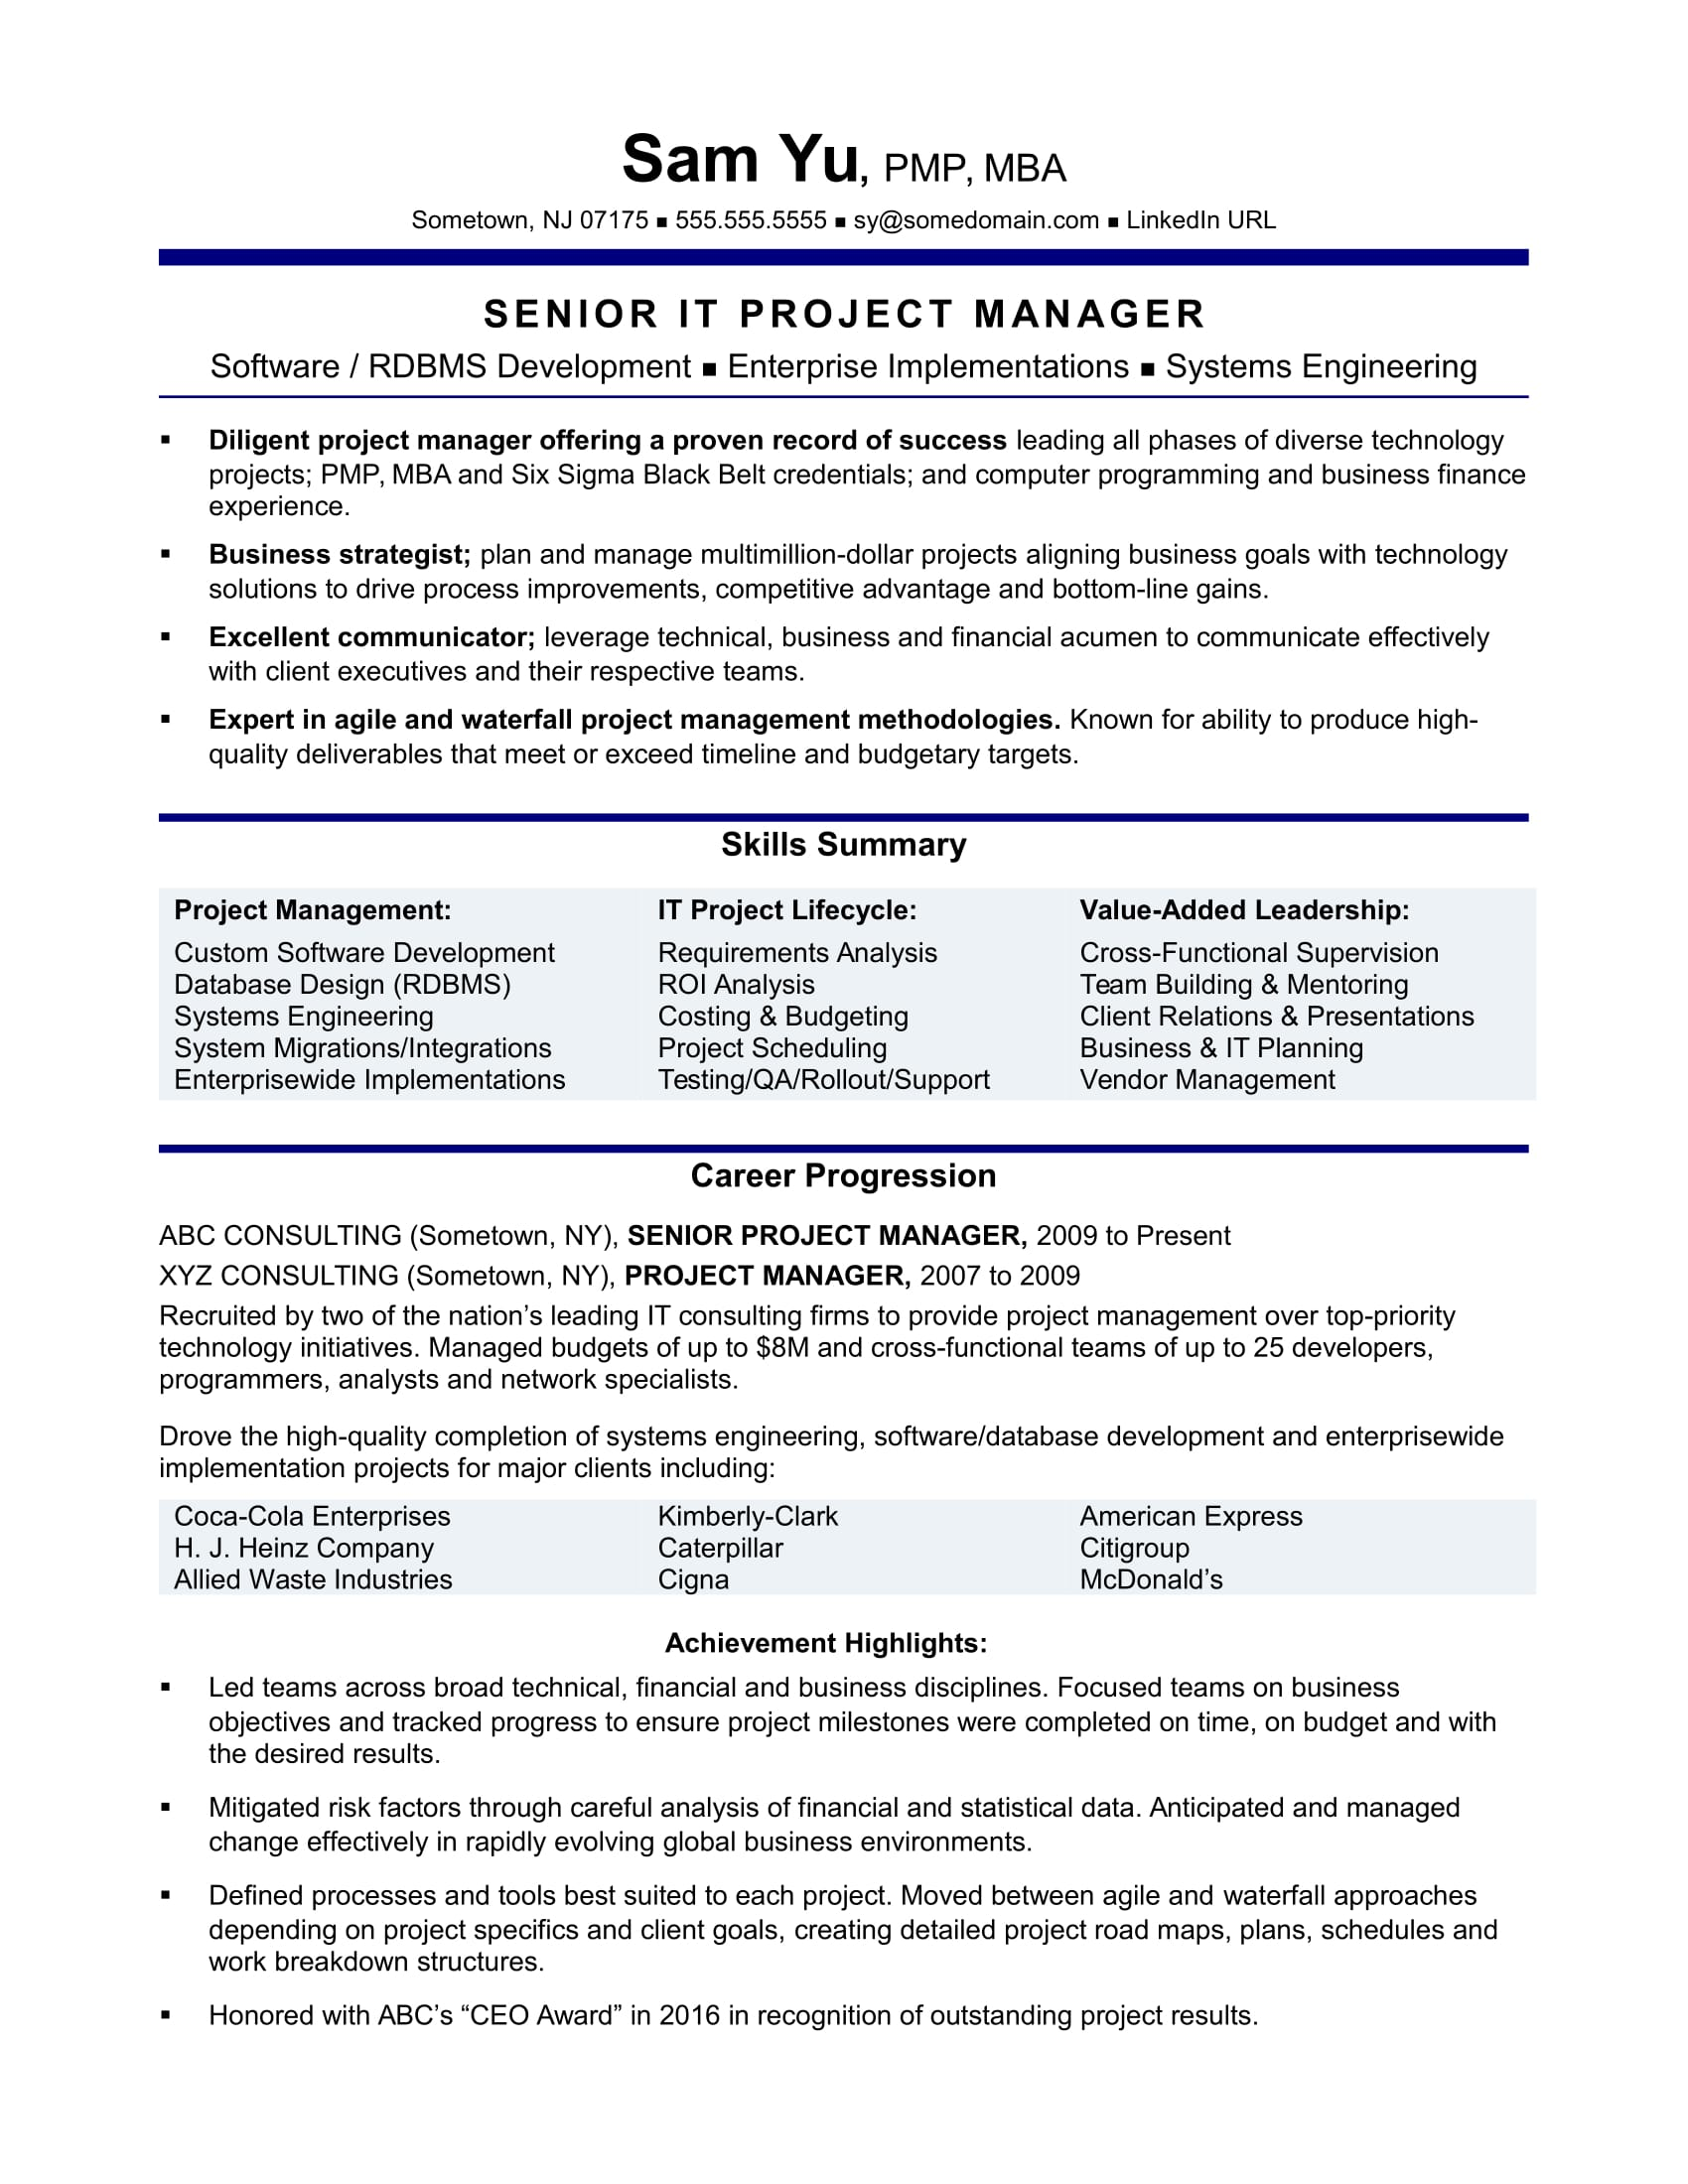 Experienced IT Project Manager Resume Sample  Resume Goals